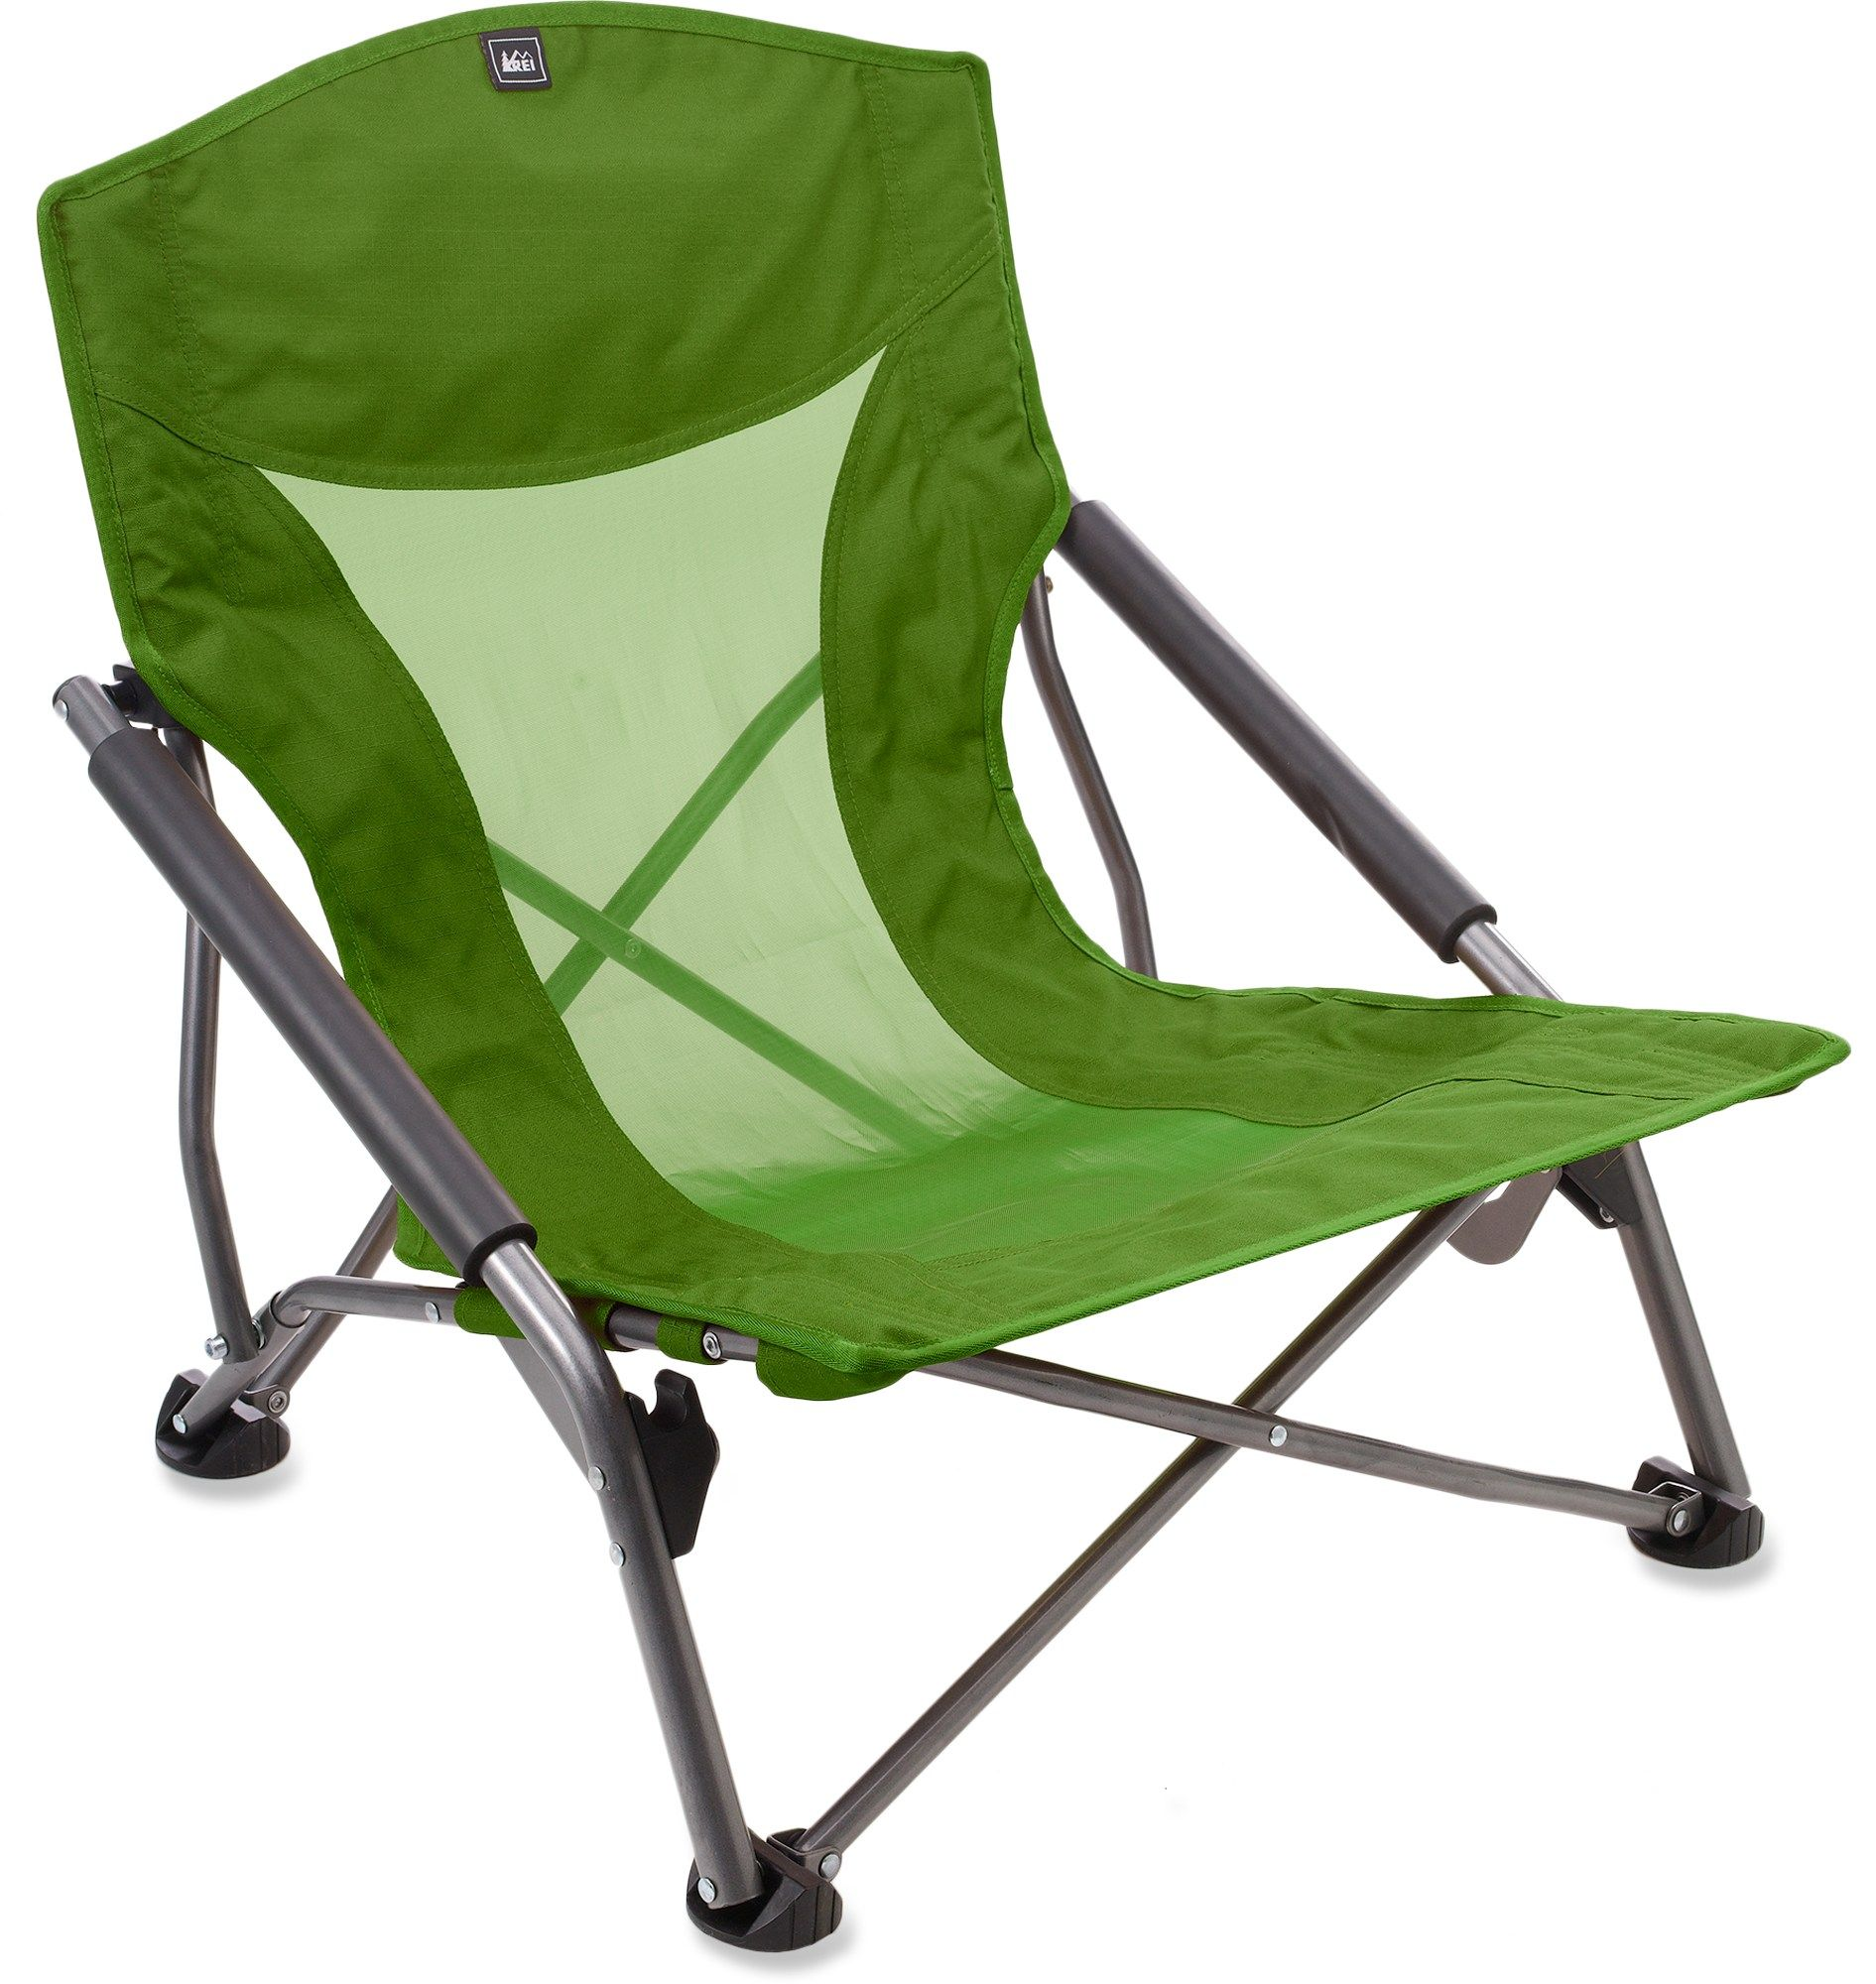 REI Camp Stowaway Low Chair at REIcom  Backpacking